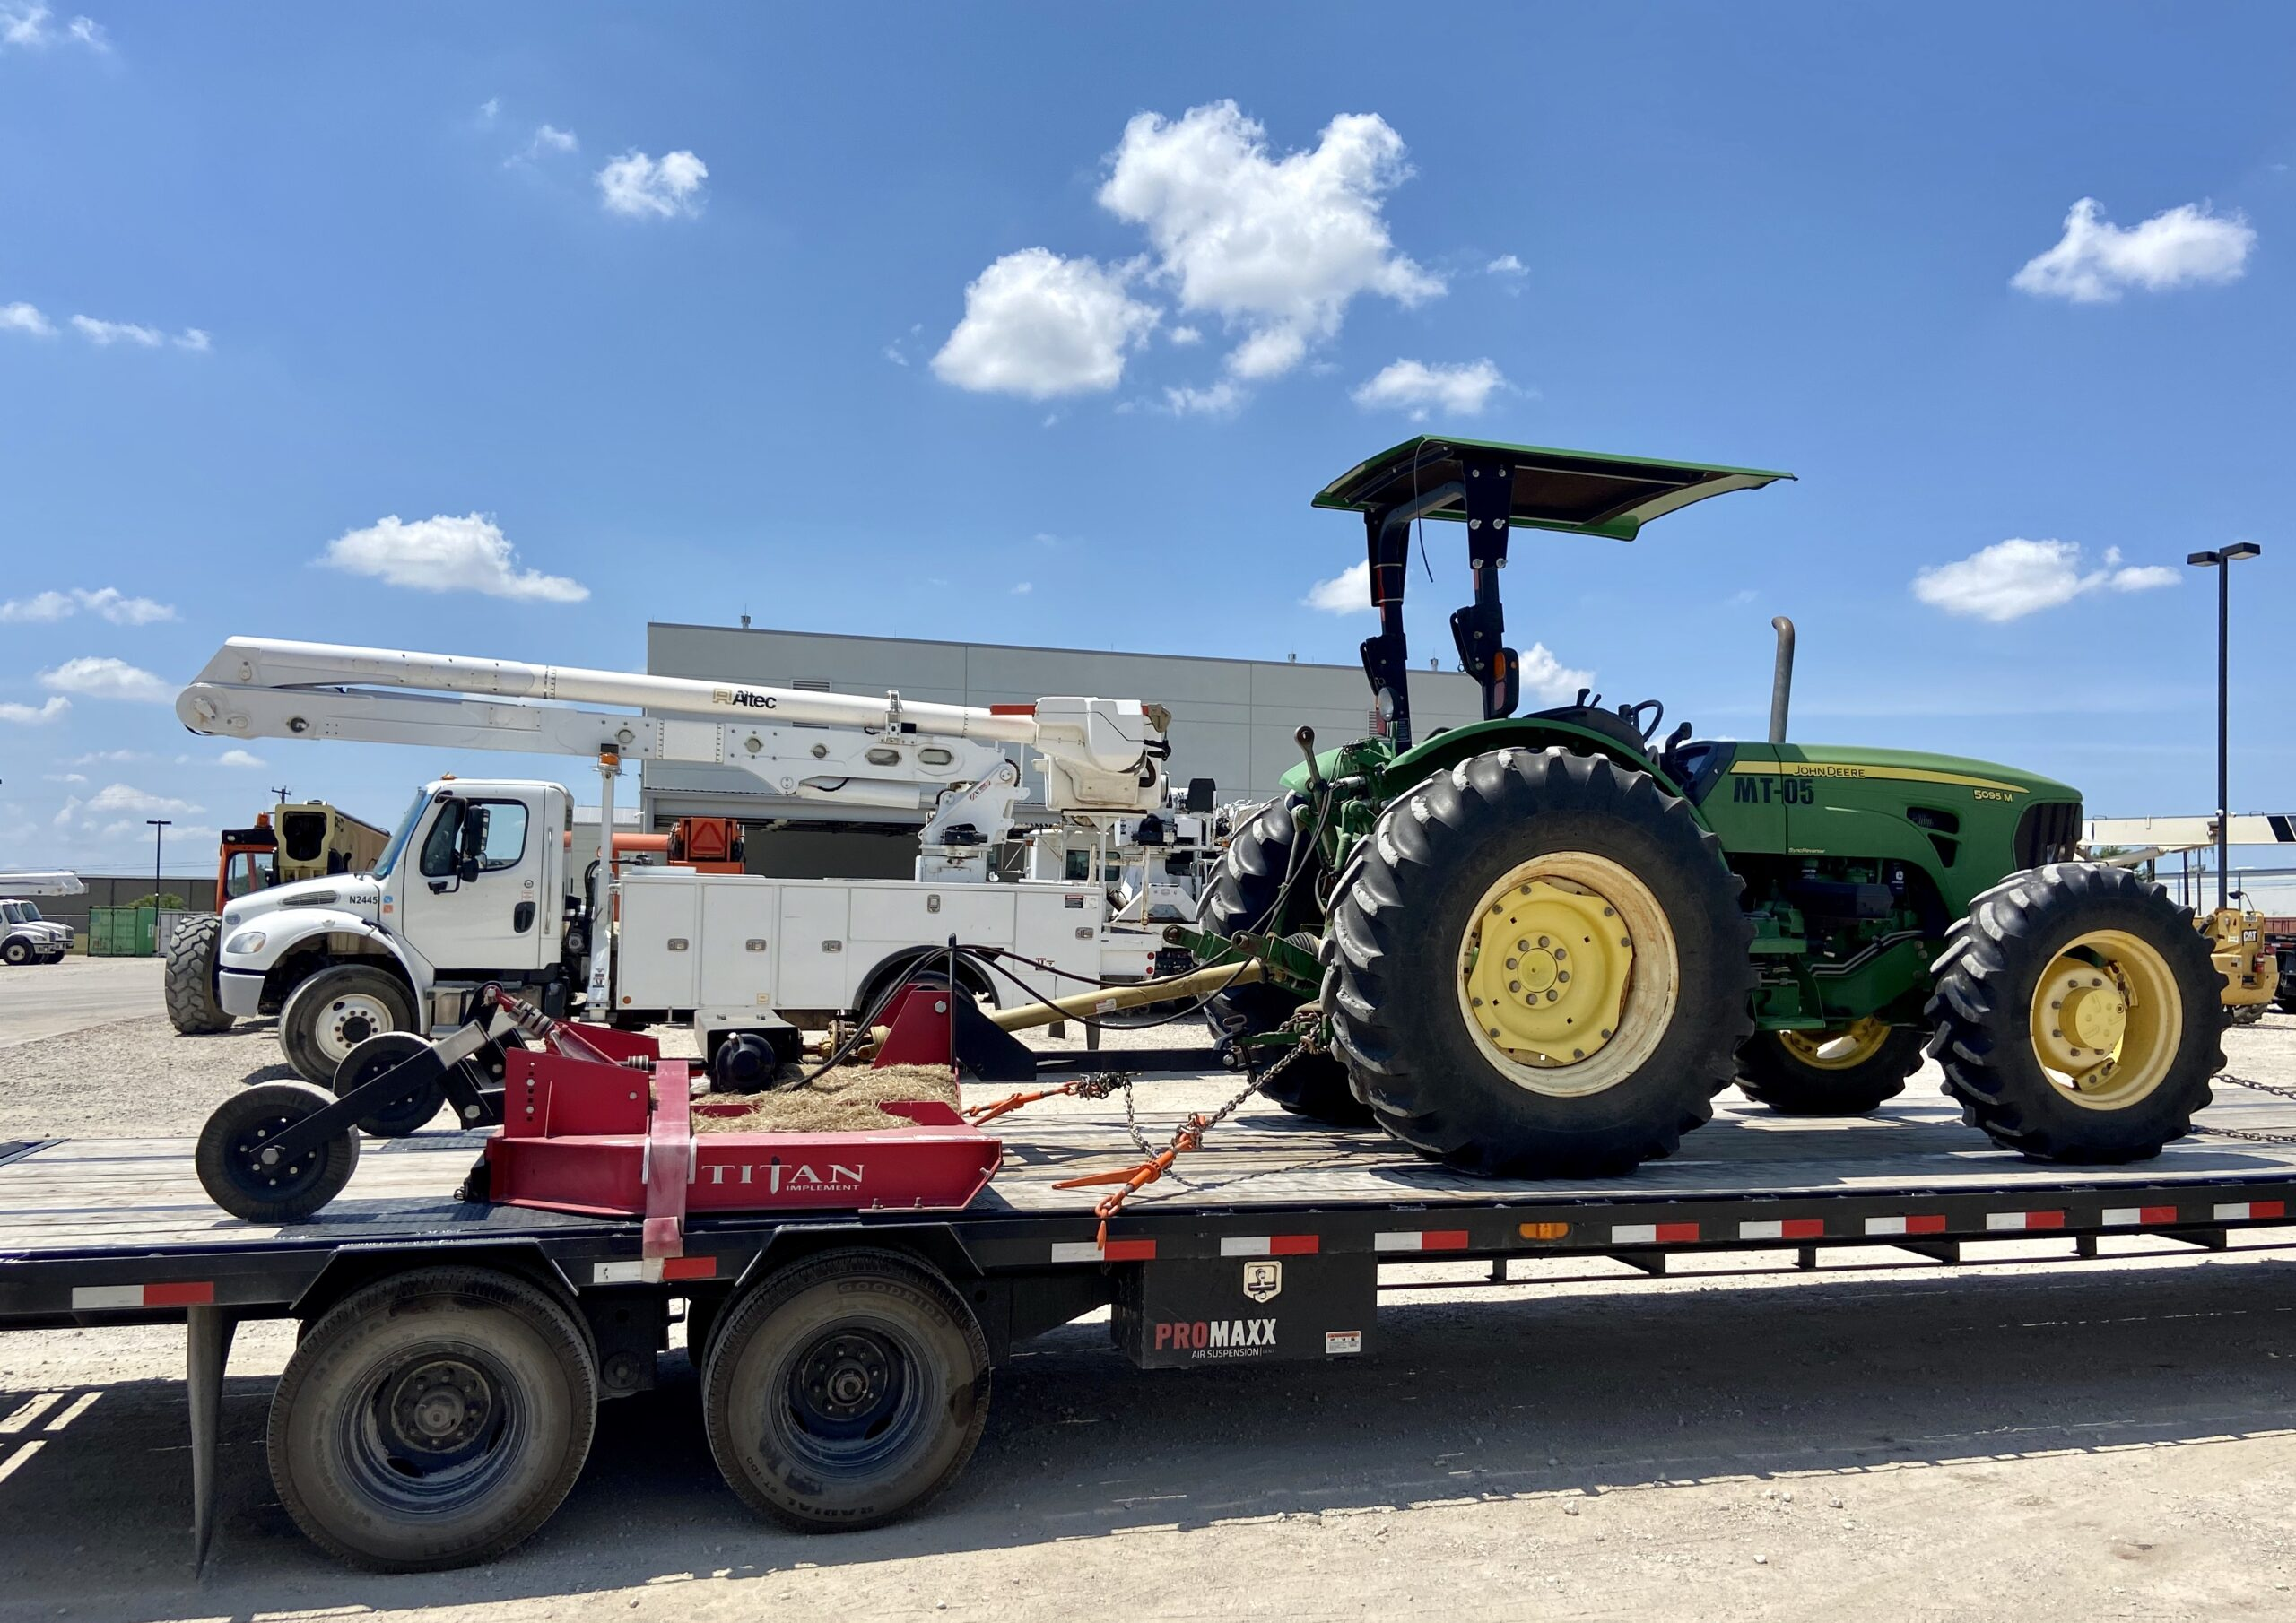 tractor on hot shot trailer